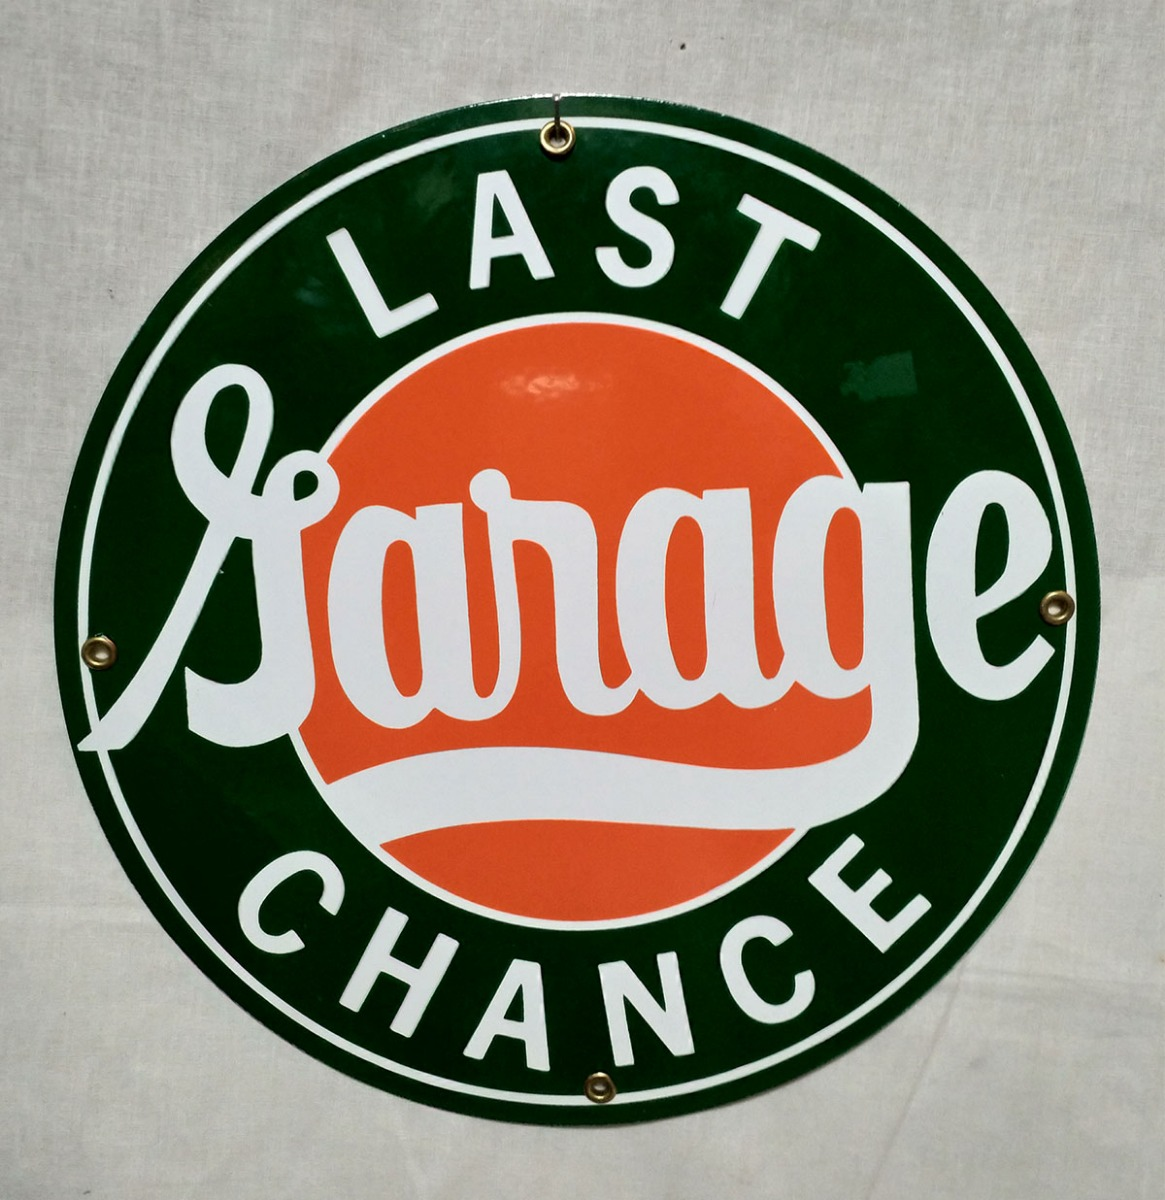 Garage Last Chance Emaille Bord